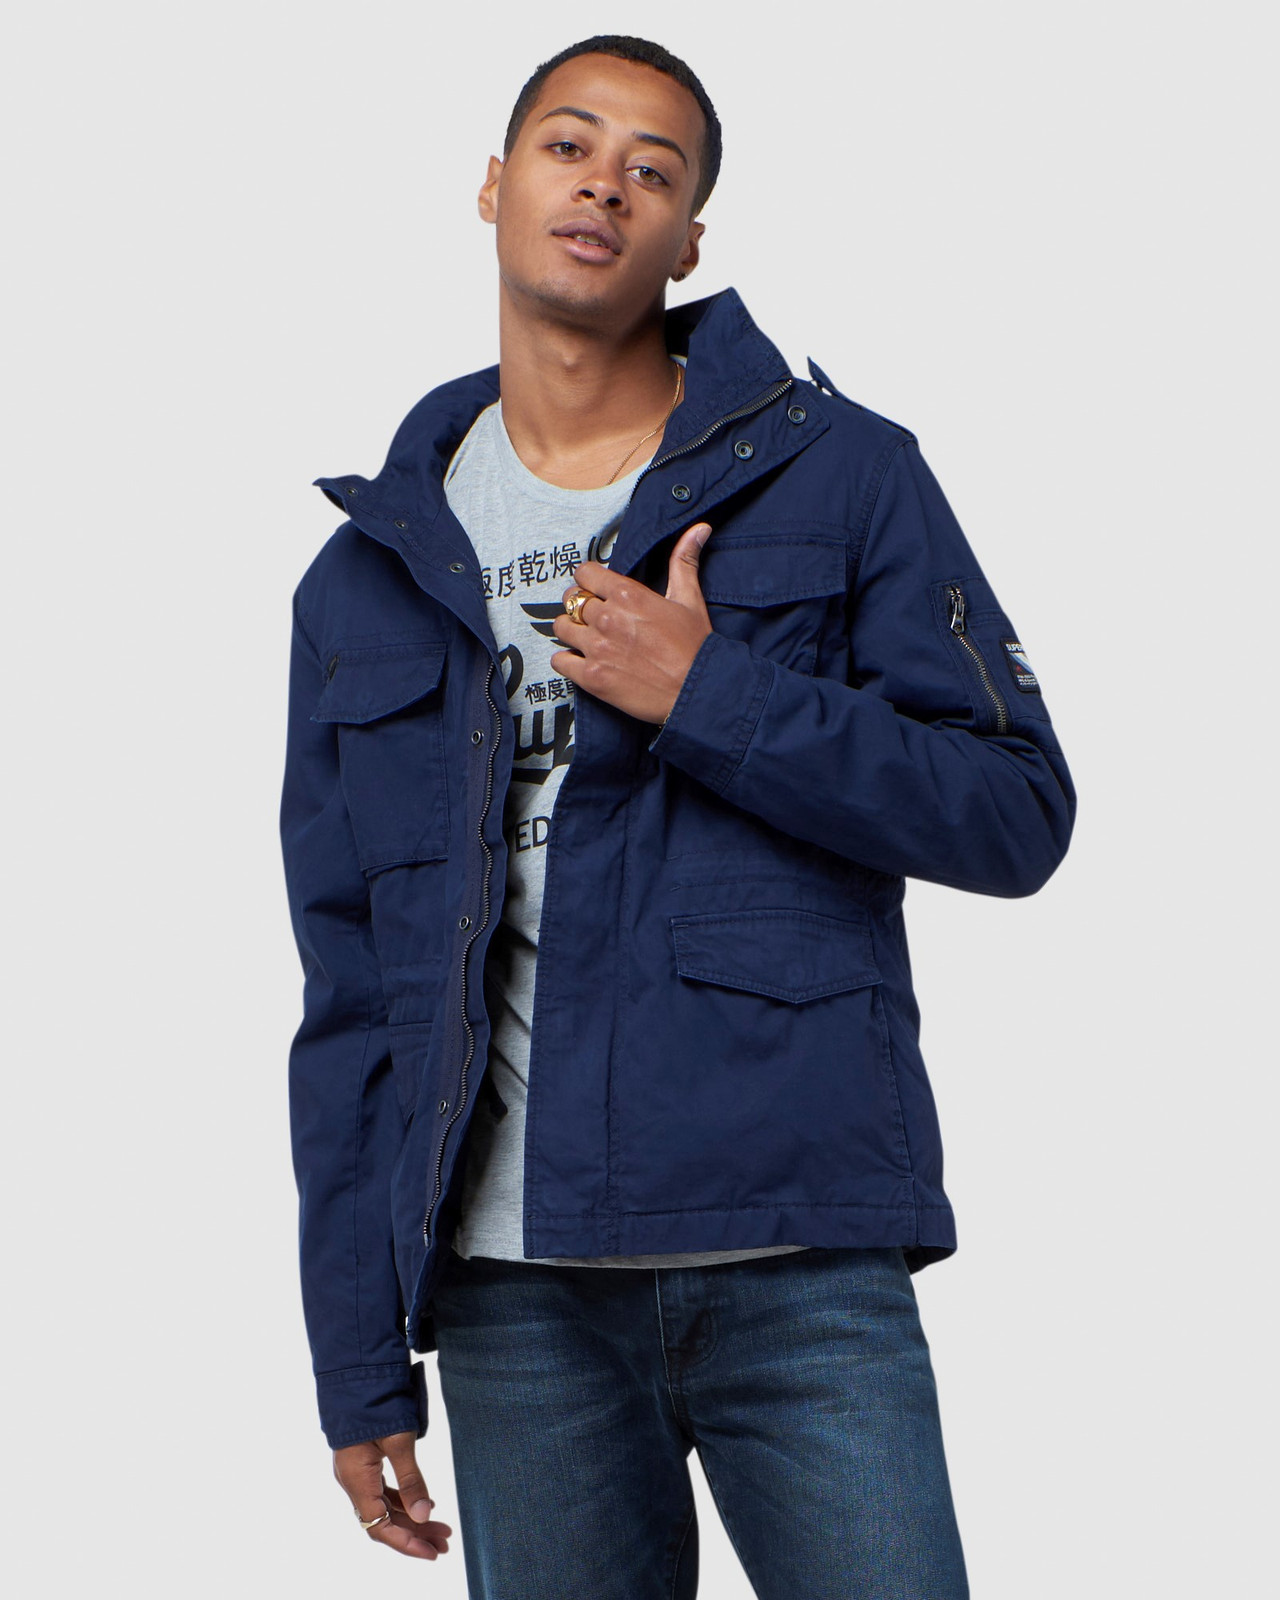 Superdry Mens CLASSIC RECRUIT JACKET Navy Military Jackets 0